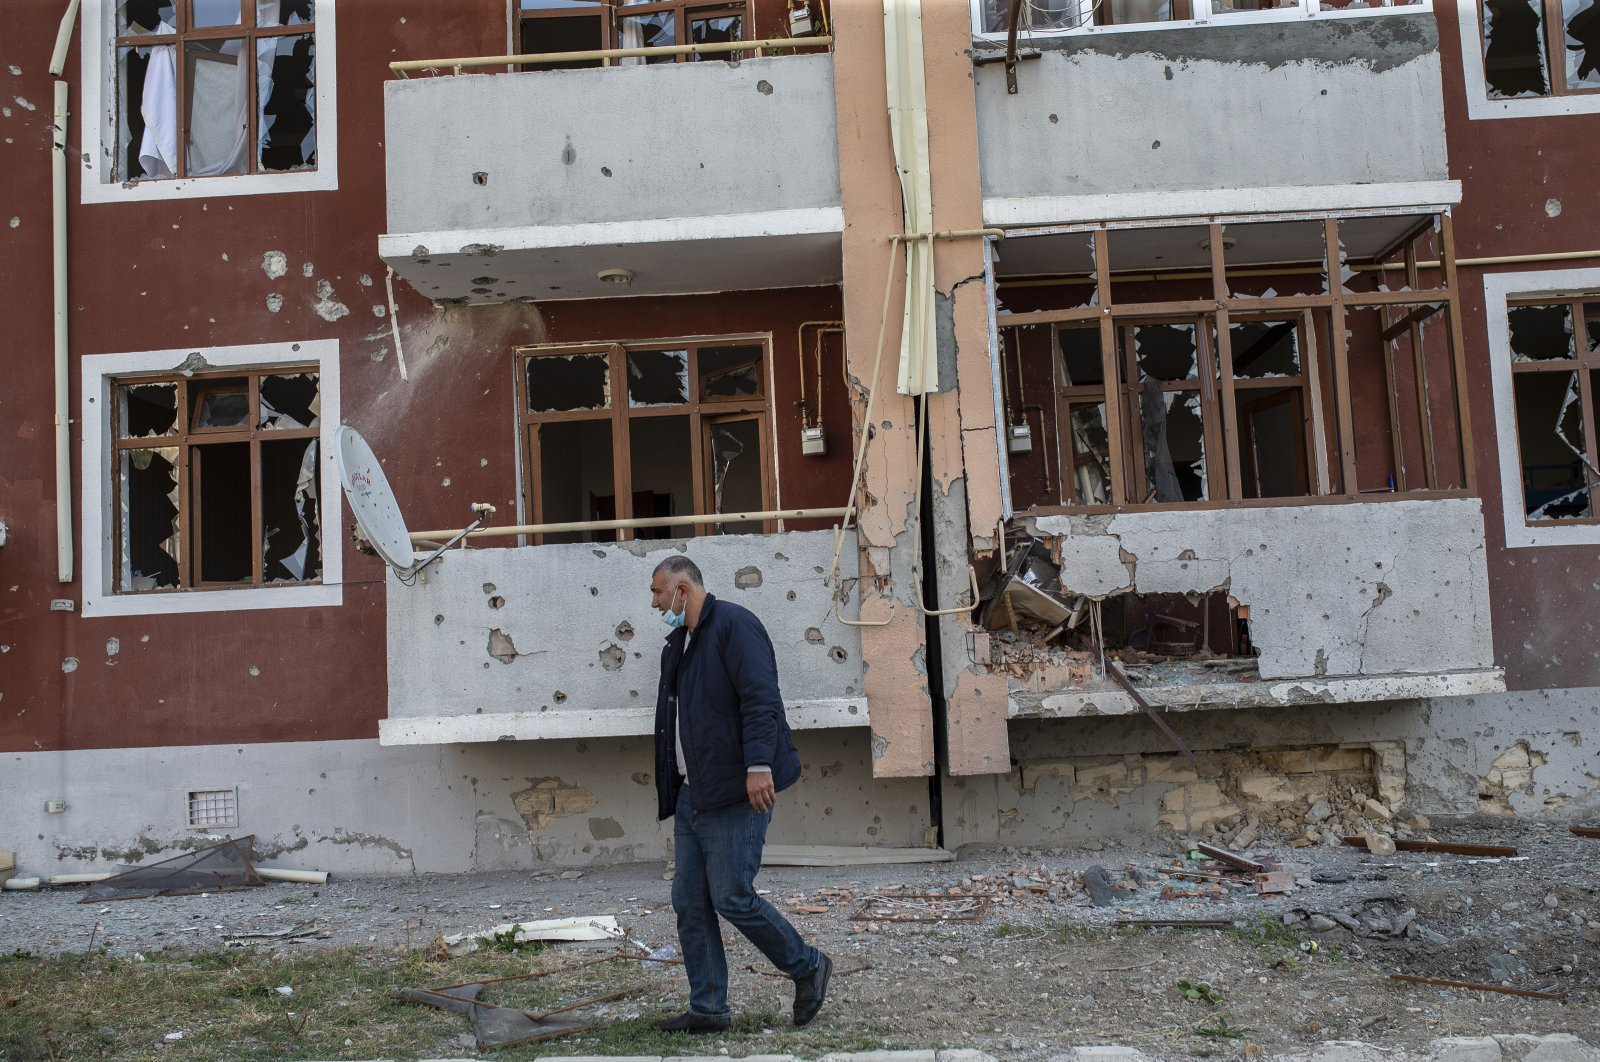 A man walks in front of a building damaged by Armenian shelling in the city of Tartar, Azerbaijan, Oct. 31, 2020. (AA Photo)